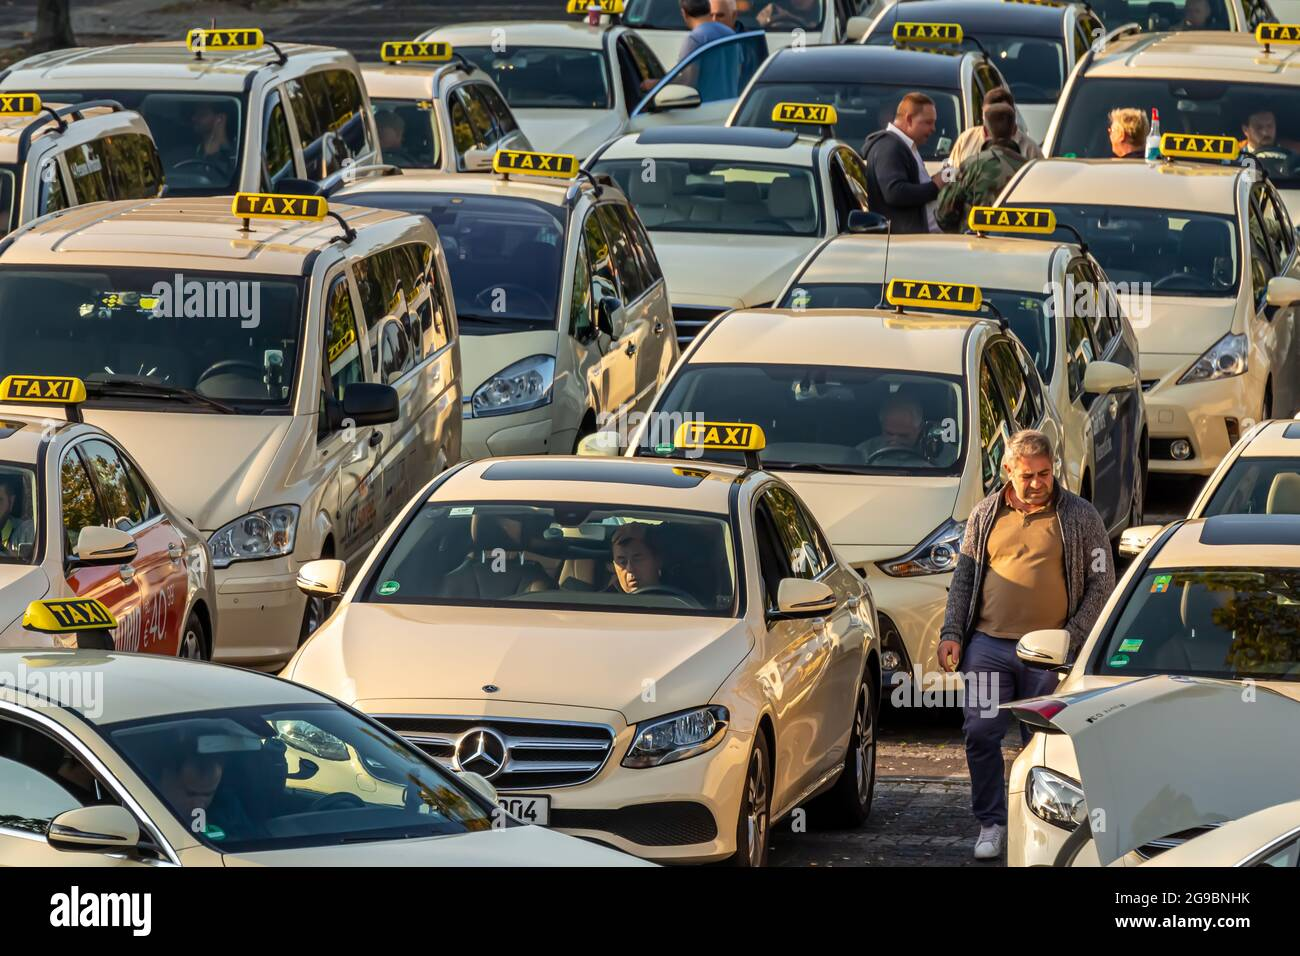 Berlin, Germany - September 15, 2018: Taxis at Berlin Tegel - Otto Lilienthal Airport Parking Lot, TXL, EDDT Stock Photo